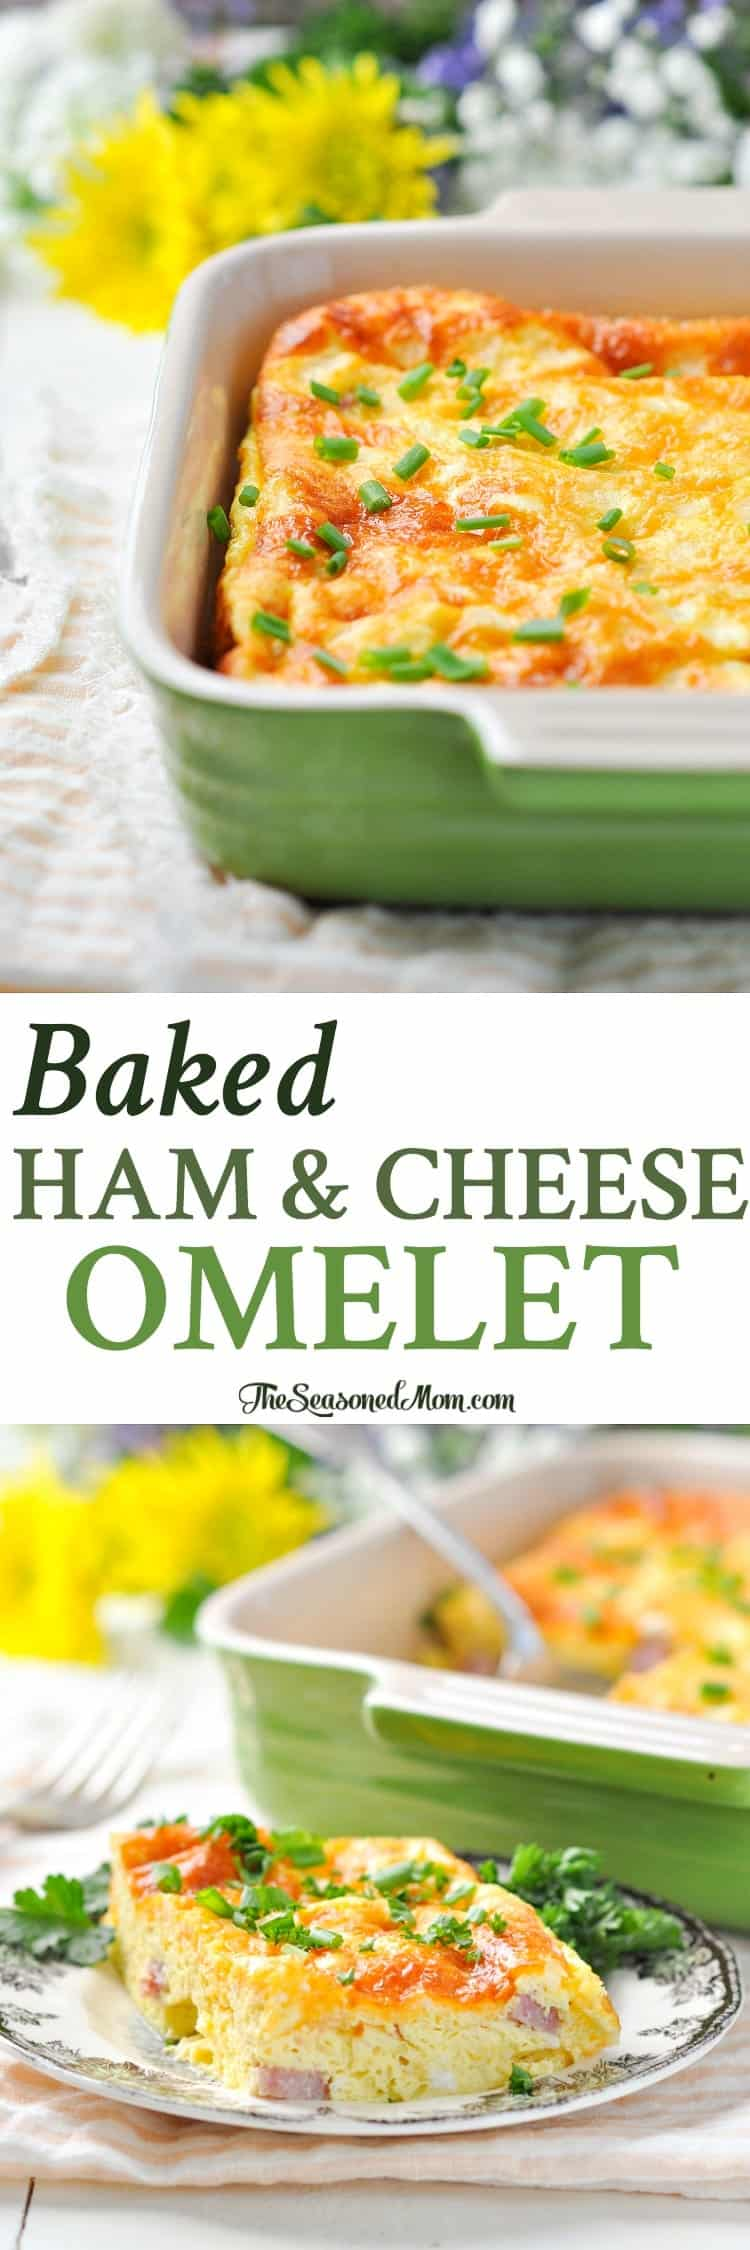 Baked Ham and Cheese Omelet | Healthy Breakfast Recipes | Breakfast ...